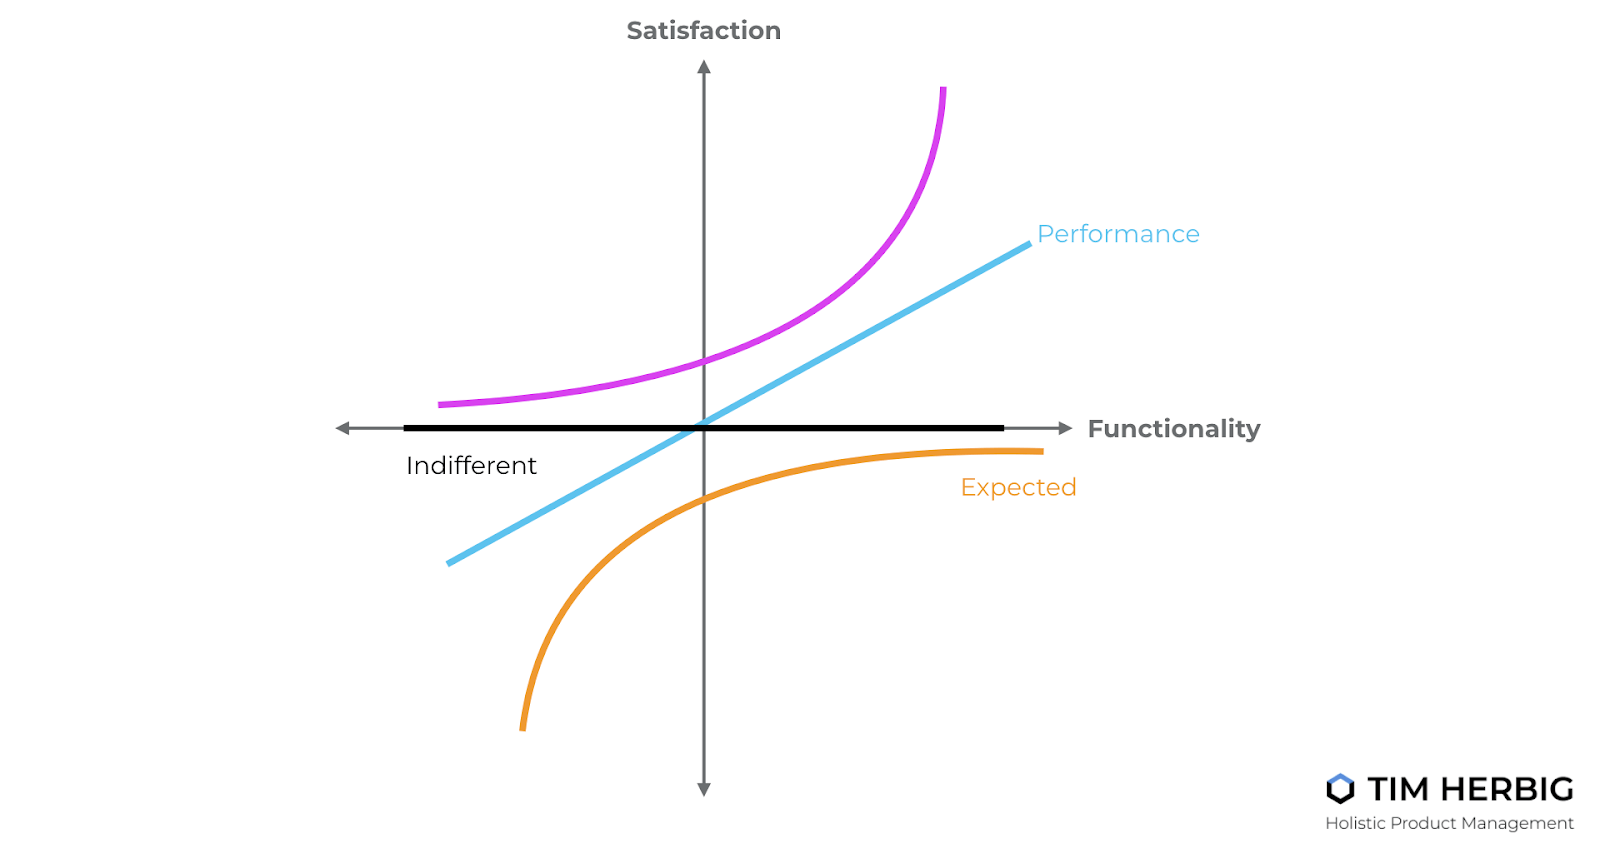 How to build winning freemium products using the Kano Model